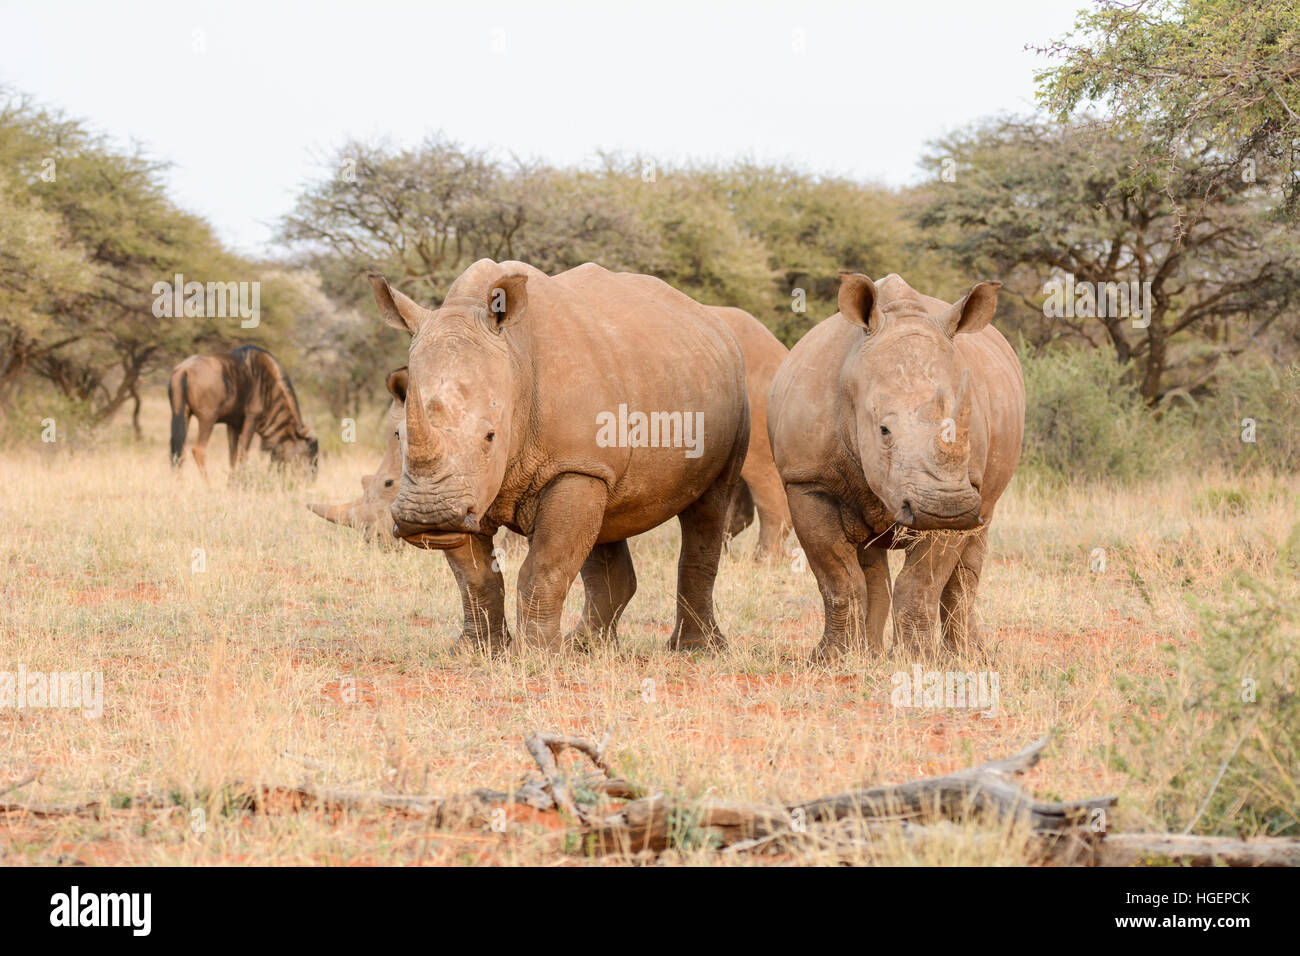 White Rhinos in Southern African savanna - Stock Image